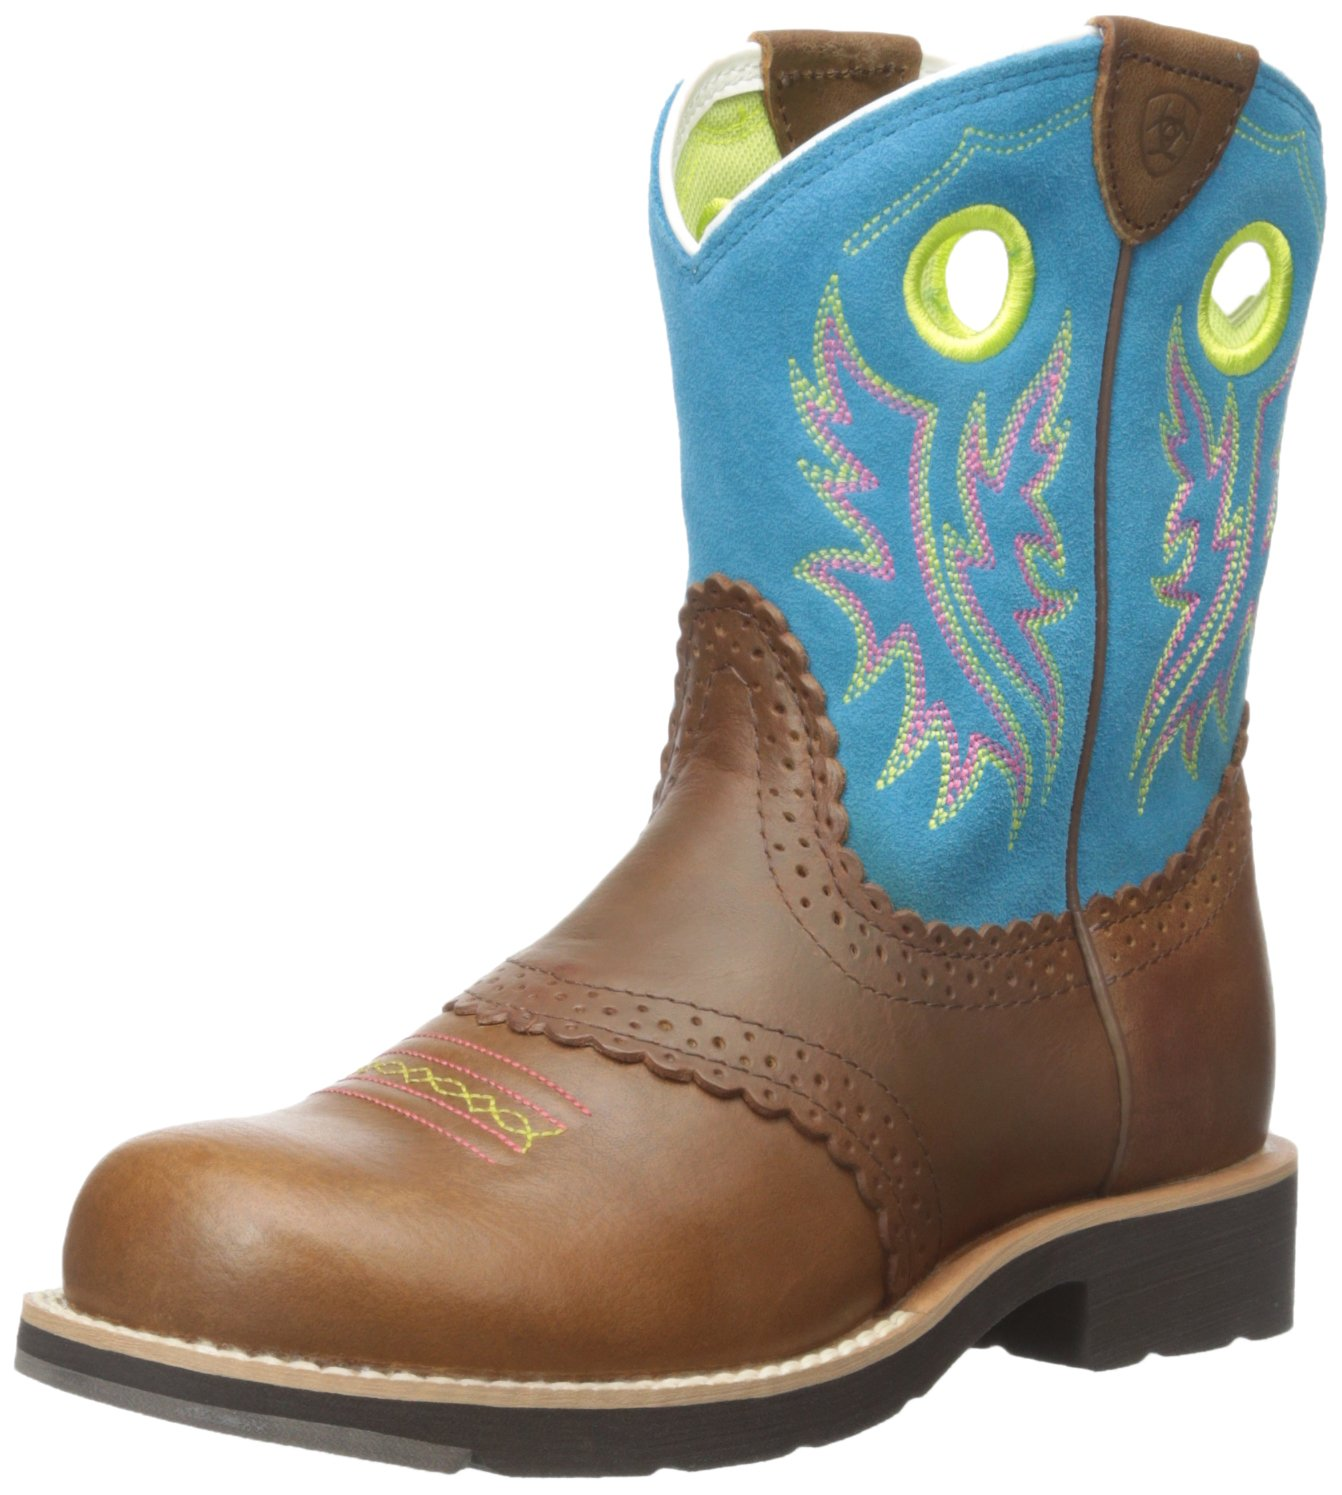 Kids' Fatbaby Cowgirl Western Cowboy Boot, Black Country Tan/Bright Blue, 2.5 M US Little Kid